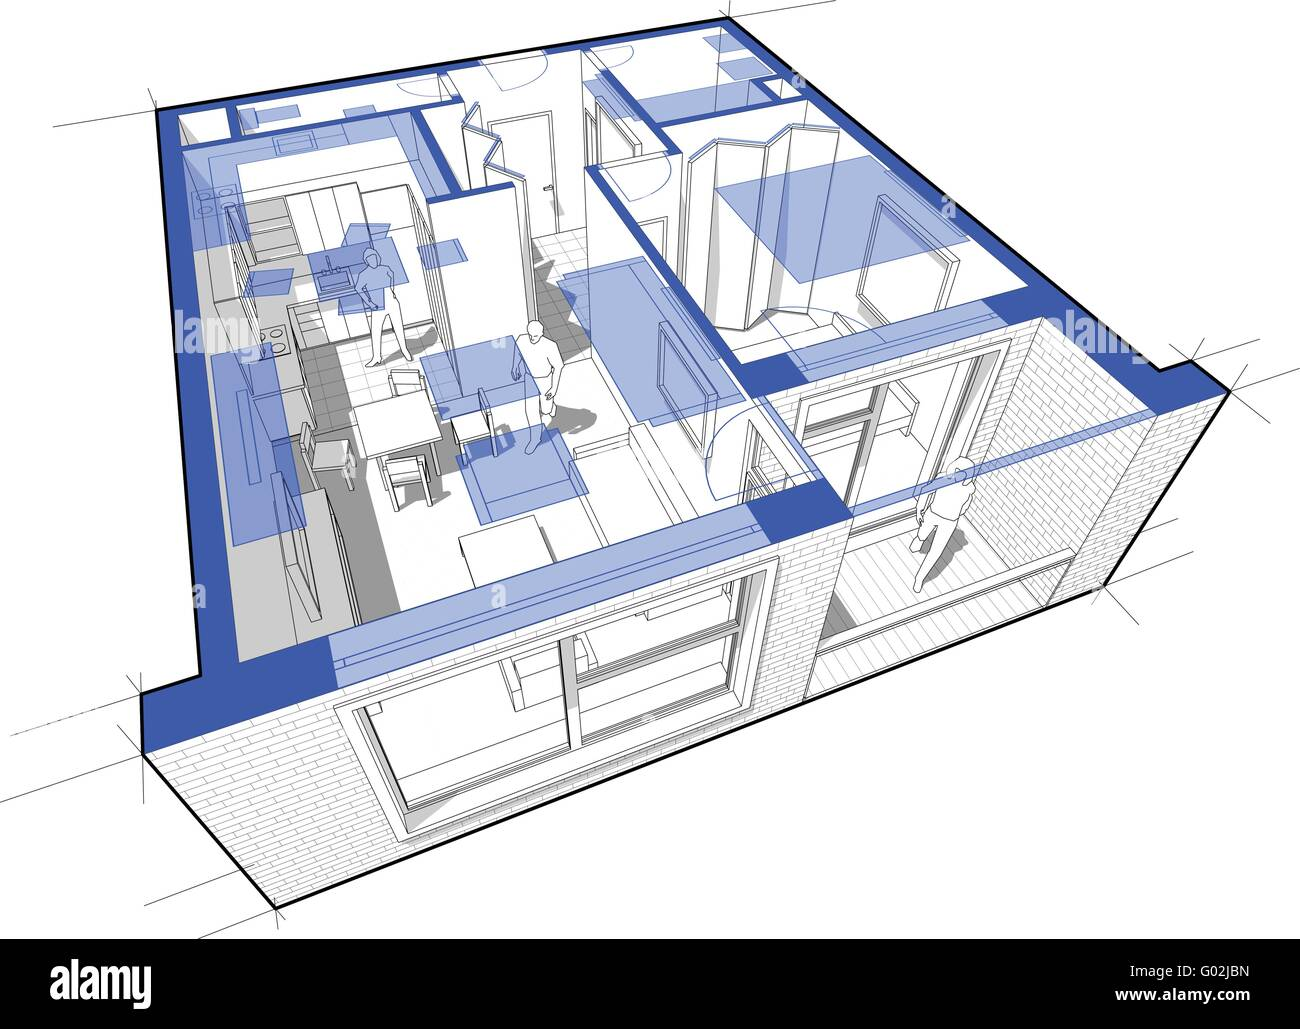 Perspective Drawing High Resolution Stock Photography And Images Alamy